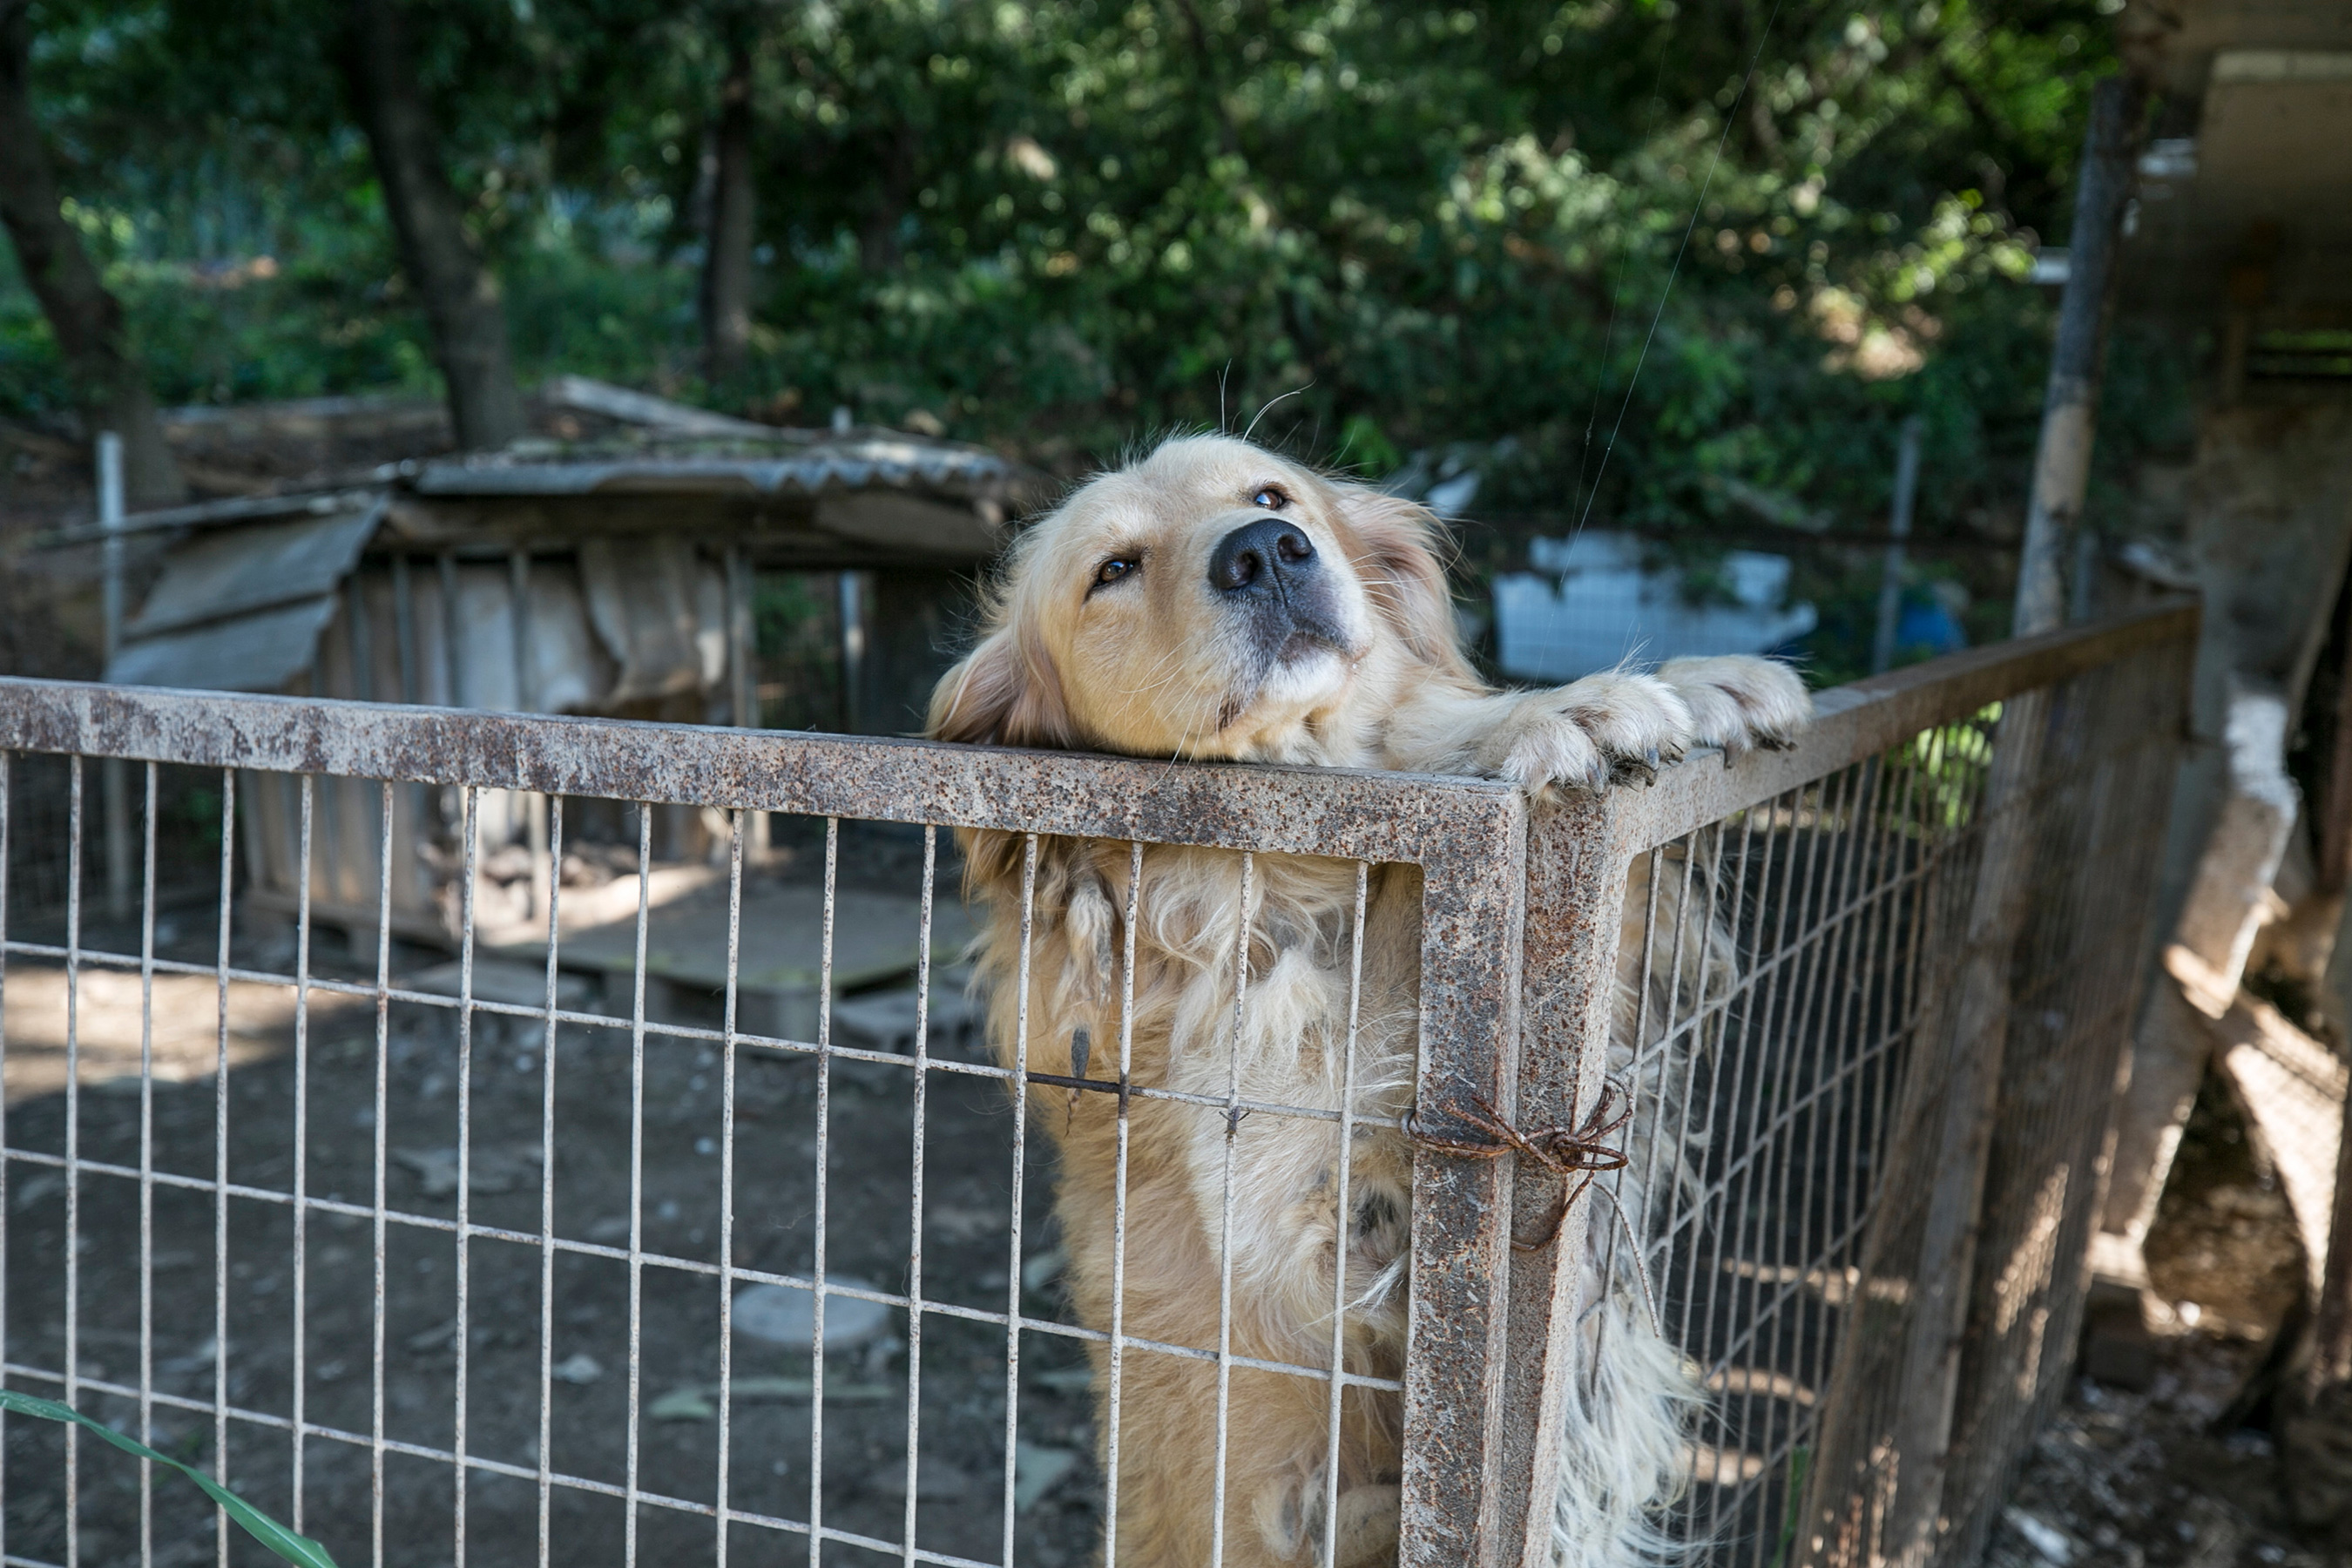 House Passes Bill to Make the 'Most Heinous' Animal Cruelty a Felony